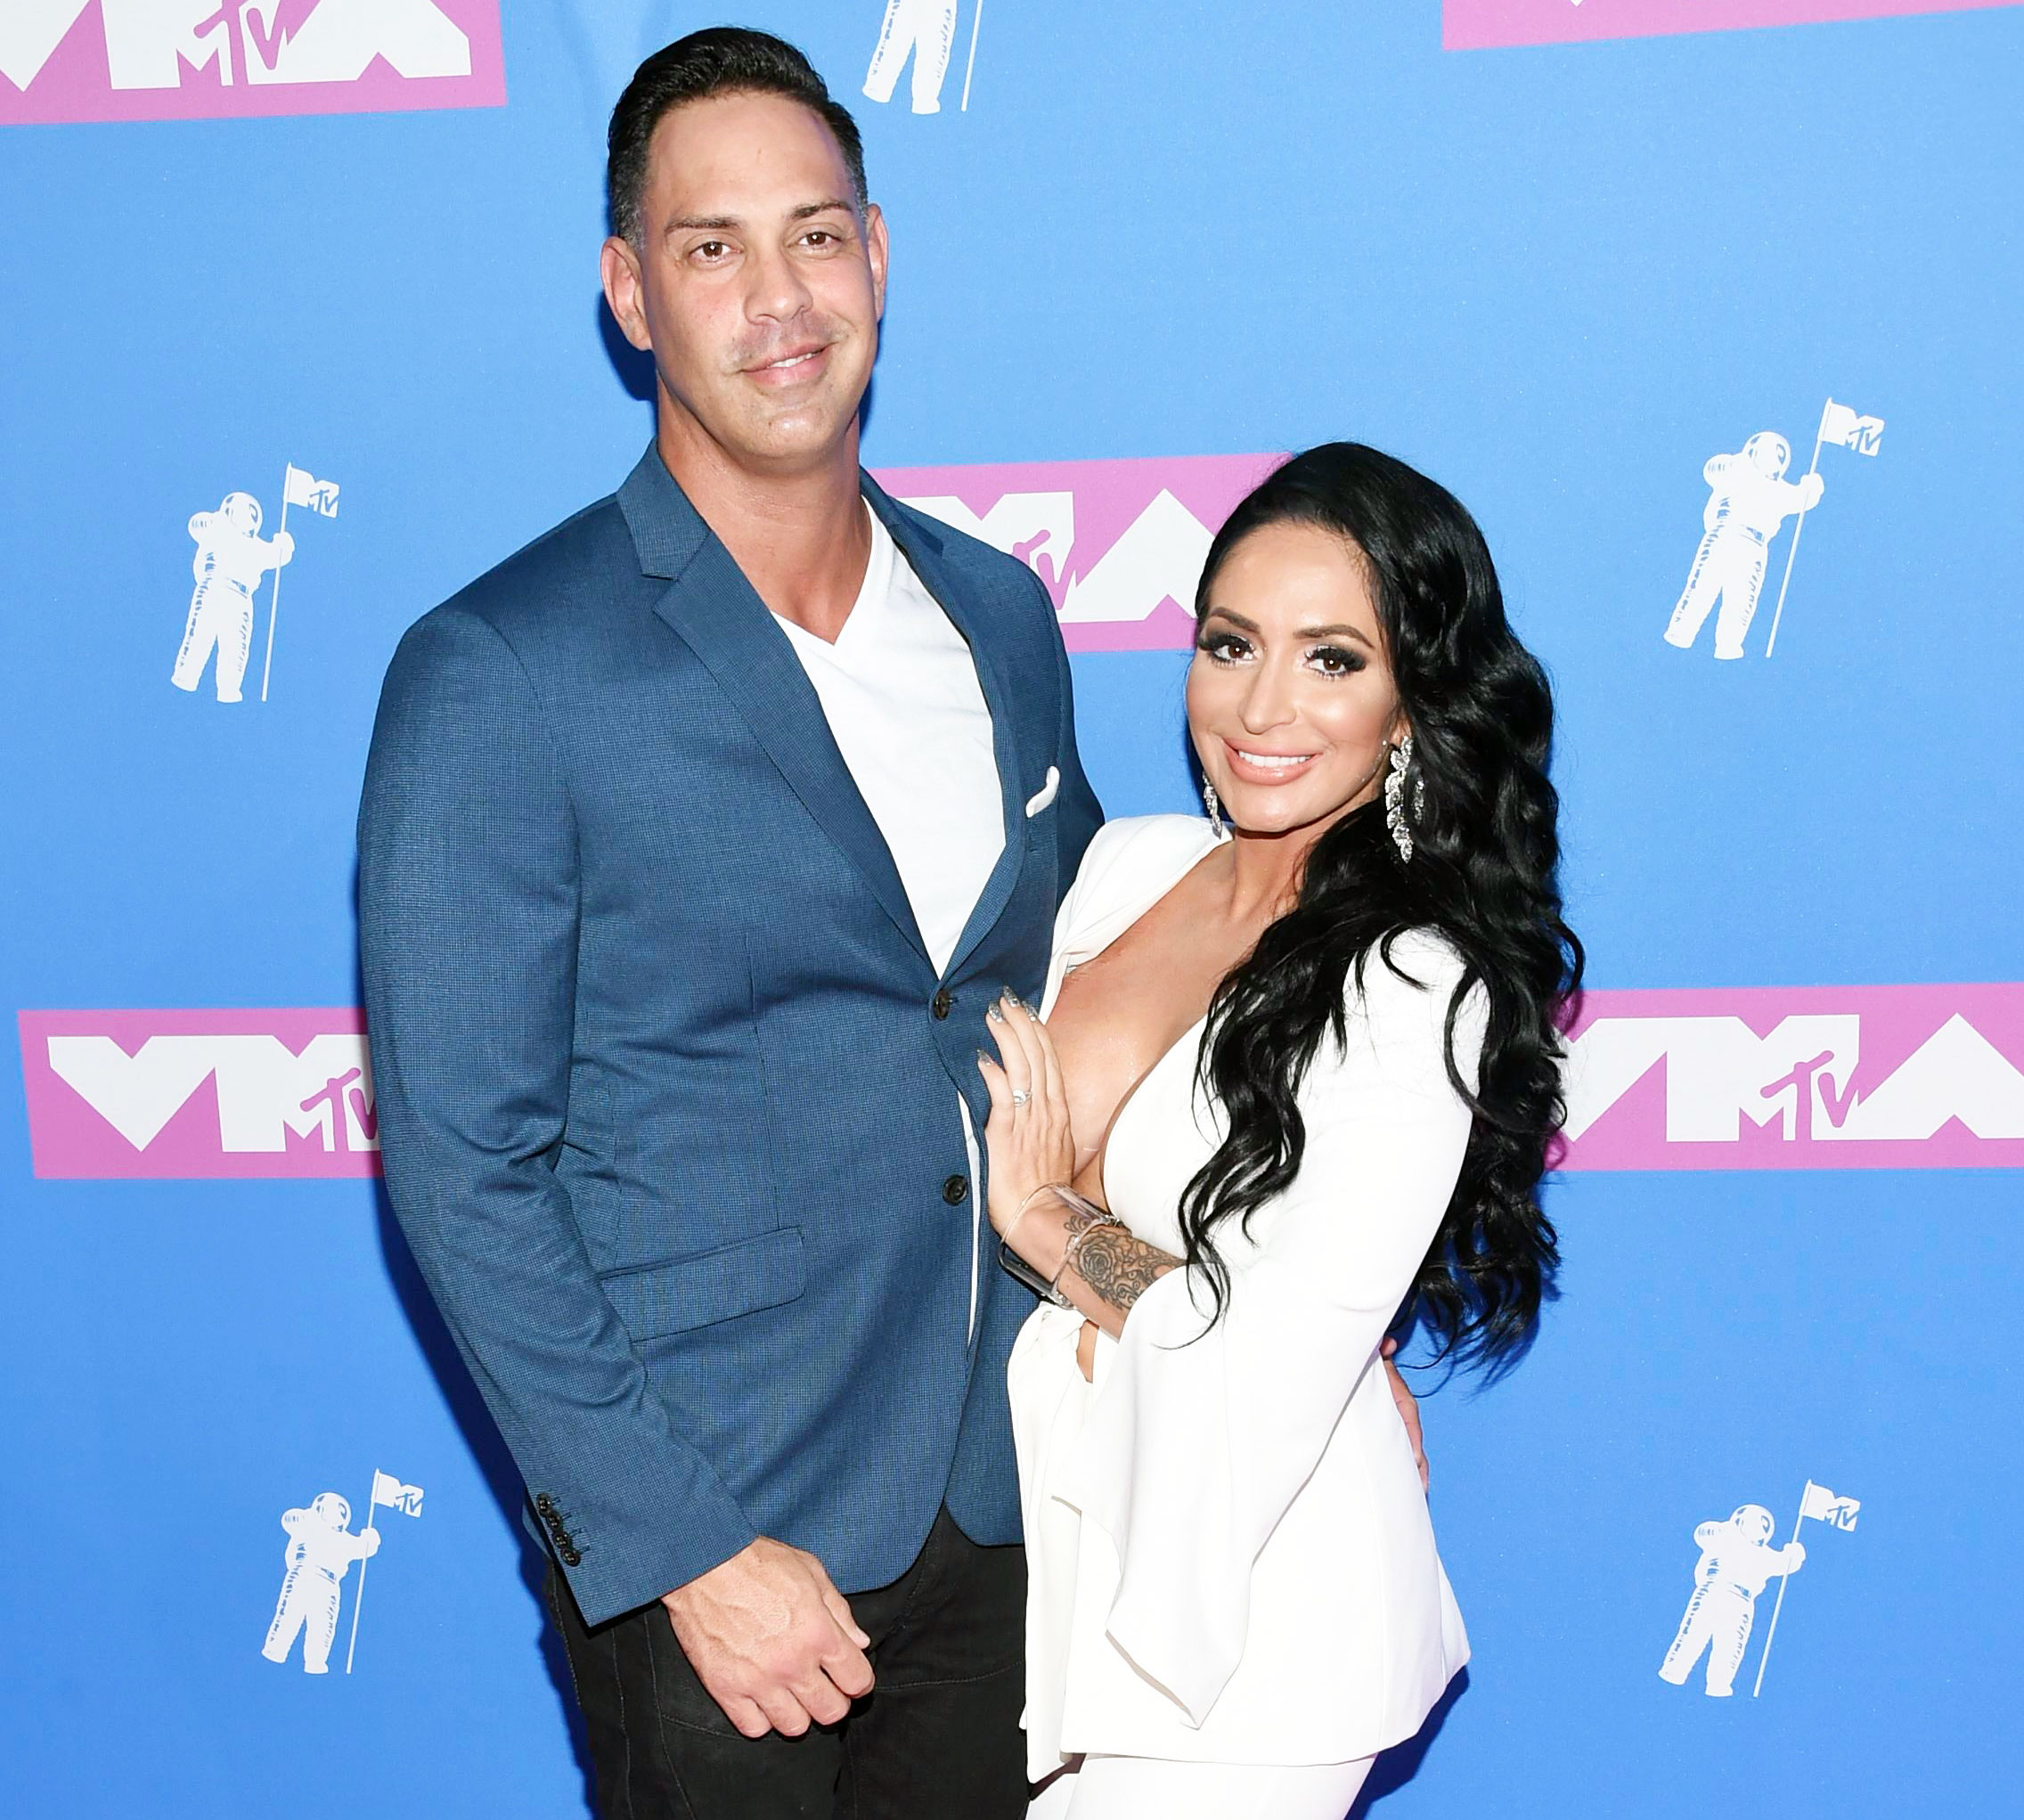 Jersey Shore Cast Throws Bachelorette Party for Angelina Pivarnick in New Orleans